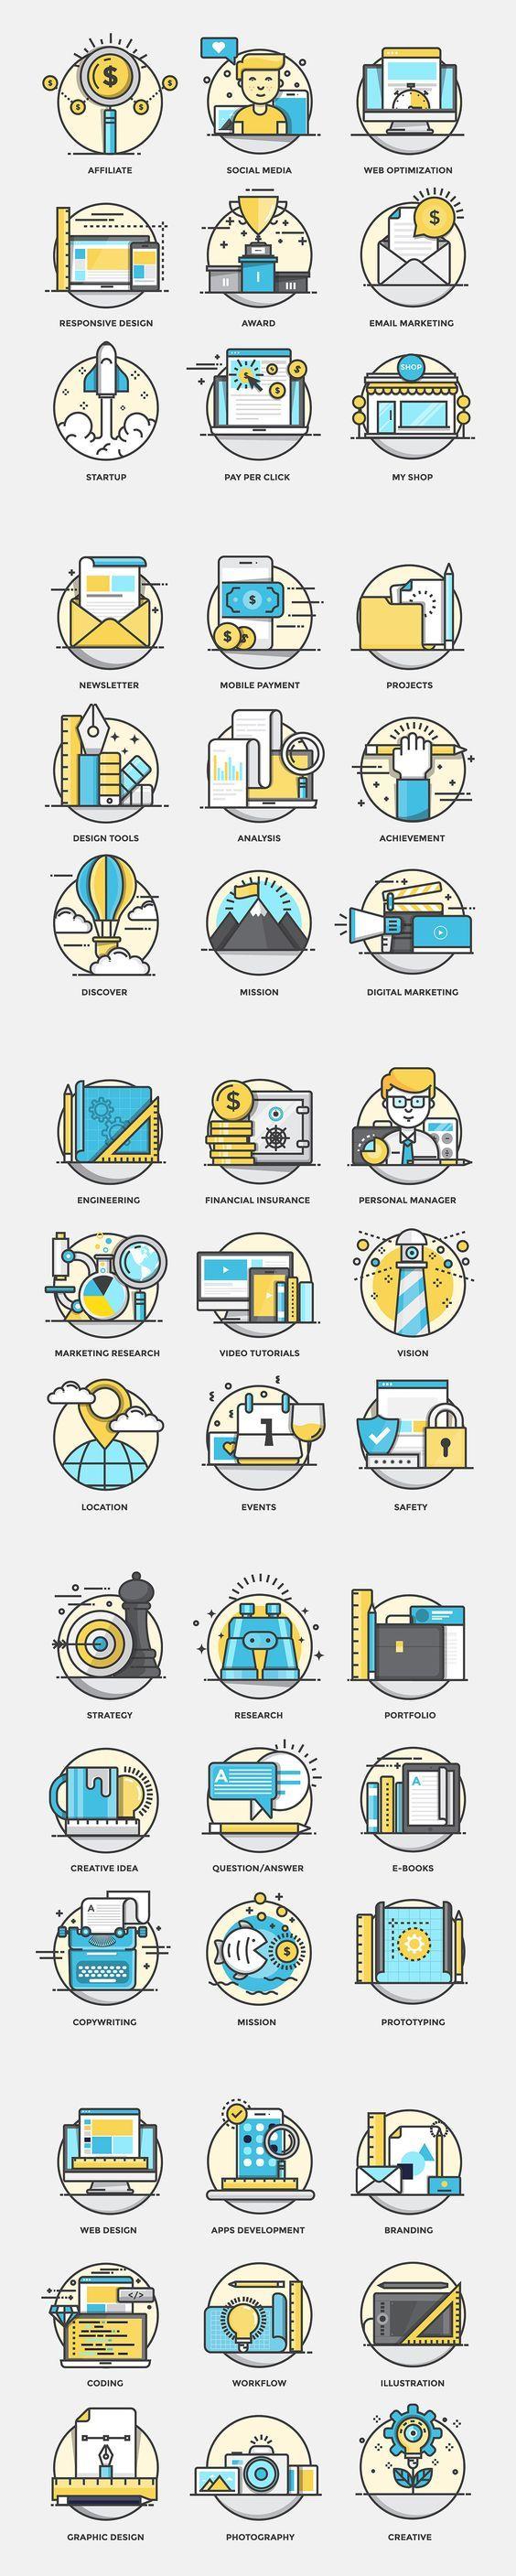 Pin by Chuah Yun Wen on Vector Graphic Treatment Pinterest